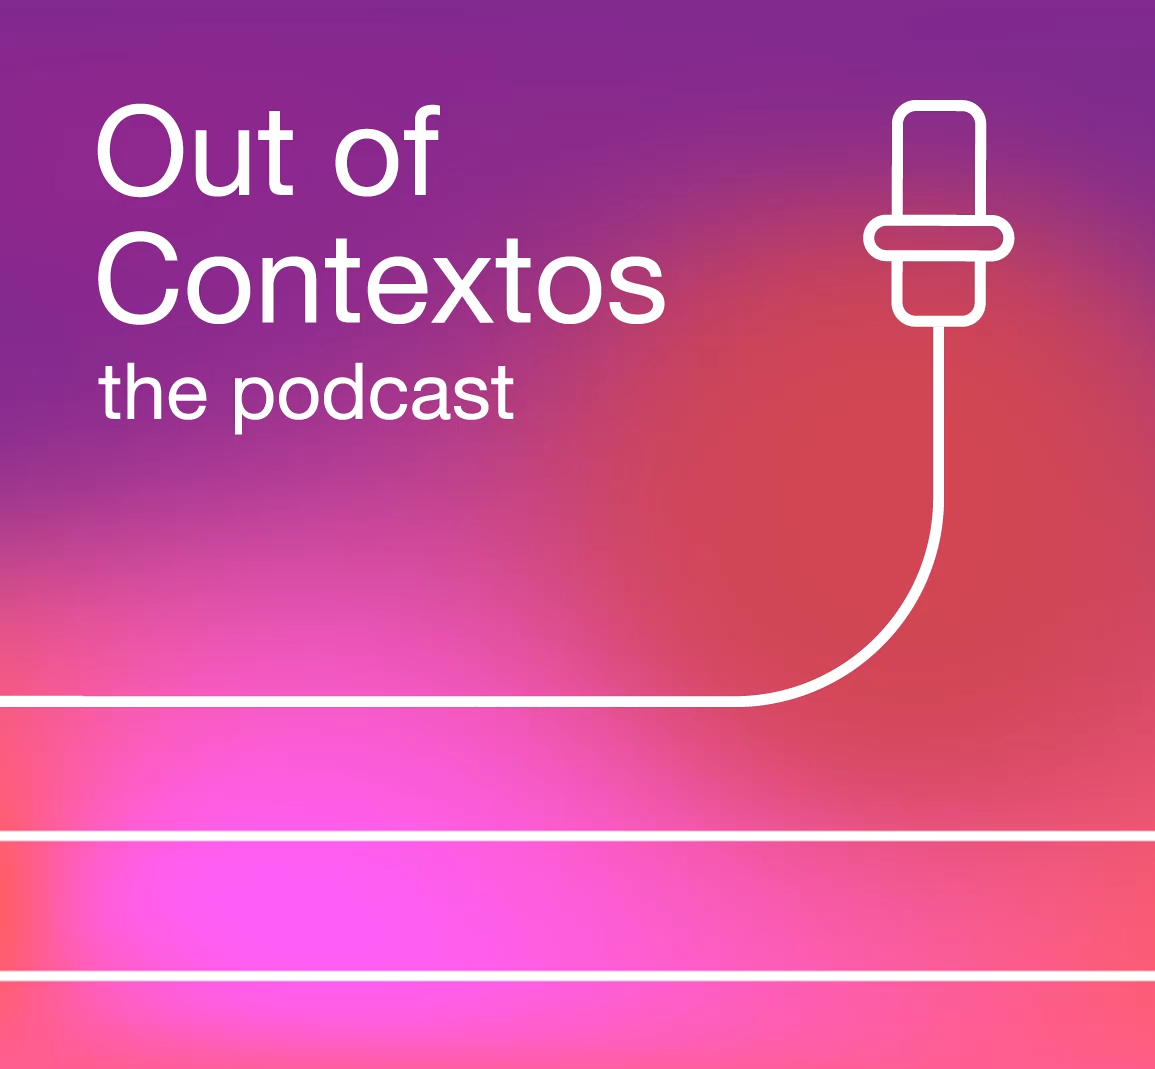 https://contextos.org.pt/wp-content/uploads/2021/06/podcast-icon.png